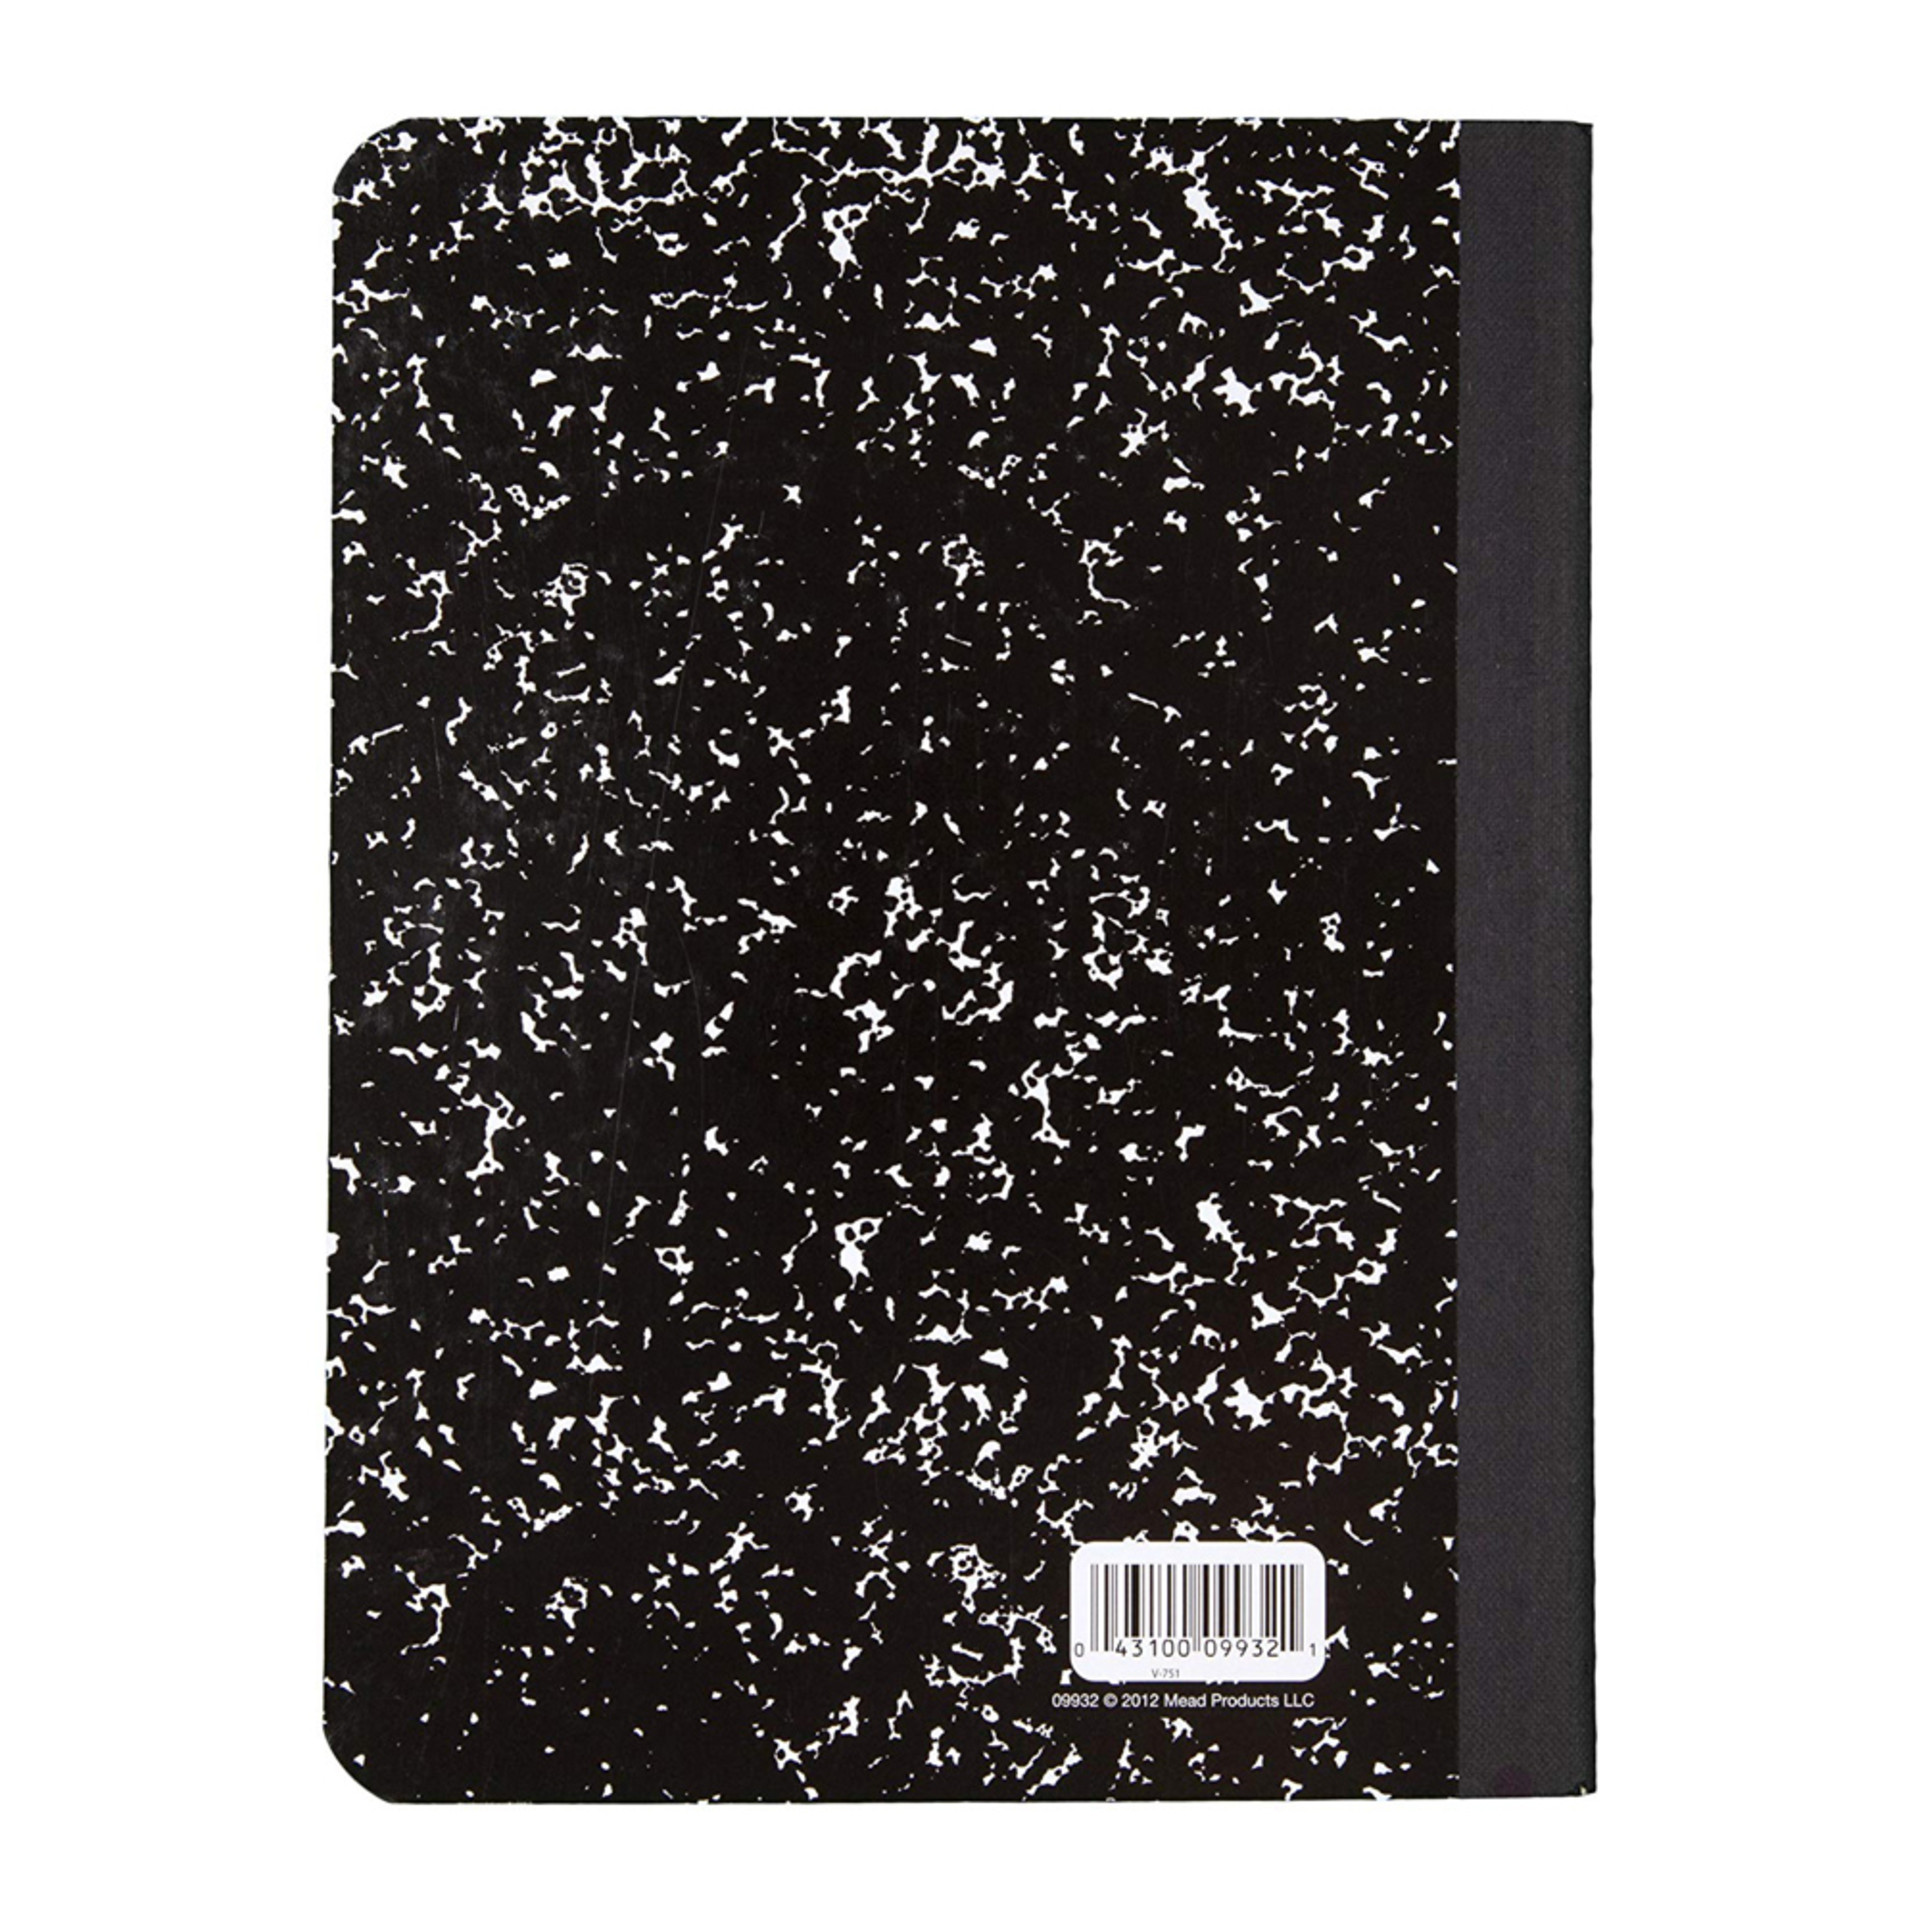 Mead Black Marble College Ruled Composition Notebook Back Cover